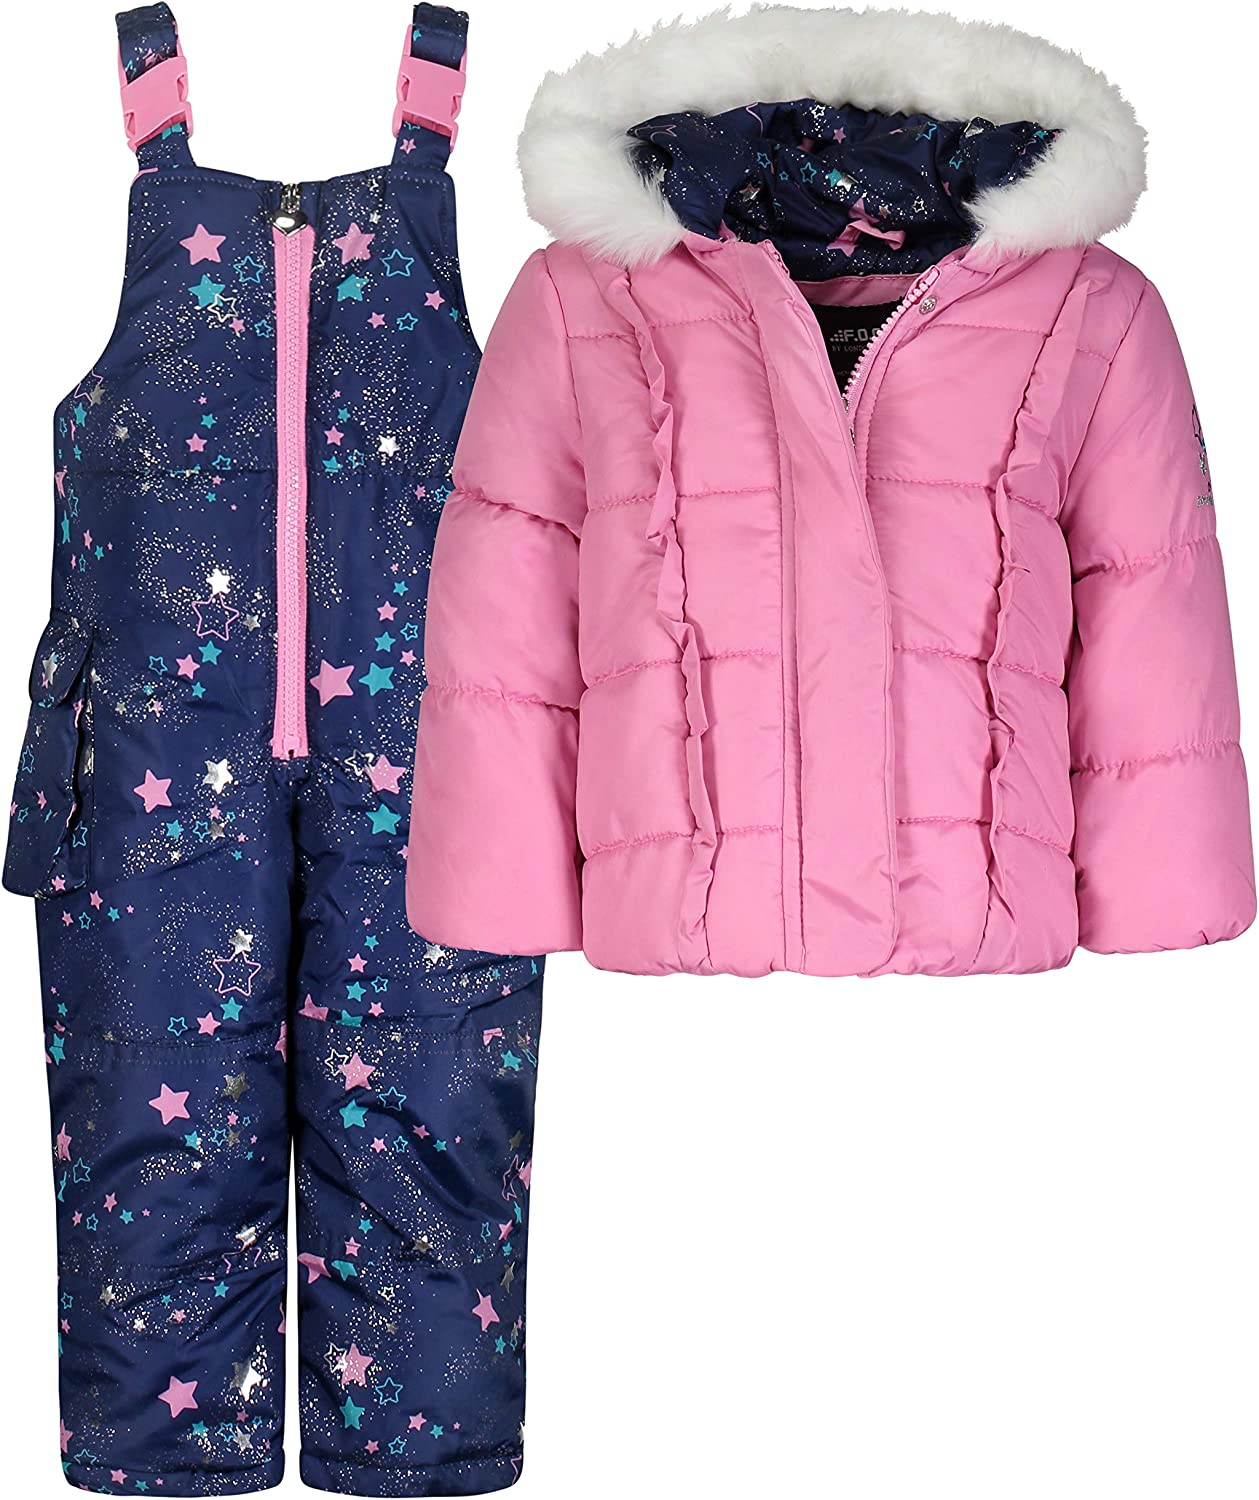 LONDON FOG Girls Snowsuit with Snowbib and Puffer Jacket